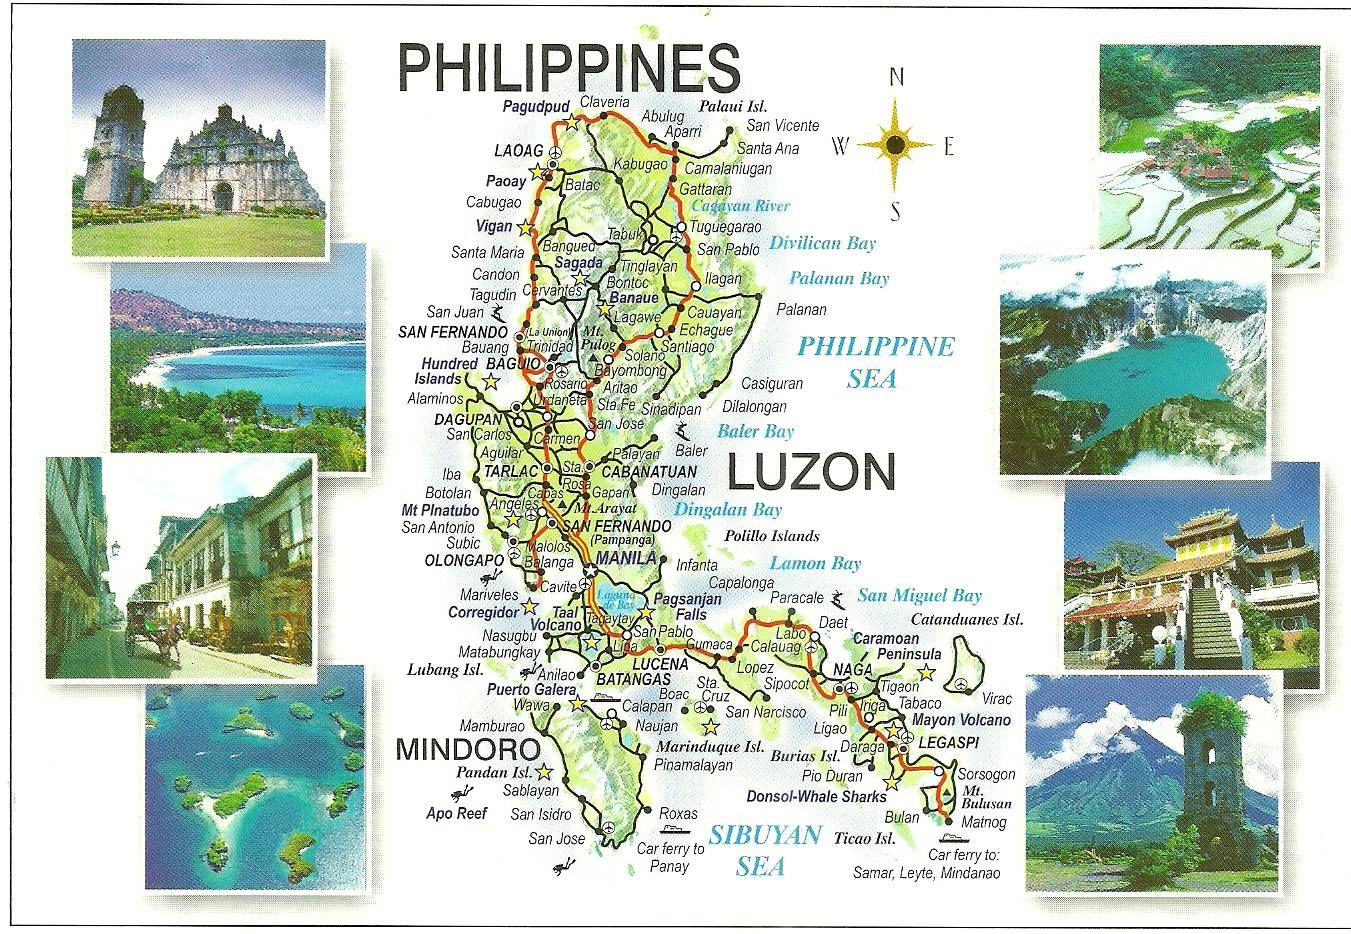 Philippines has 7,100 islands. If you want to visit the